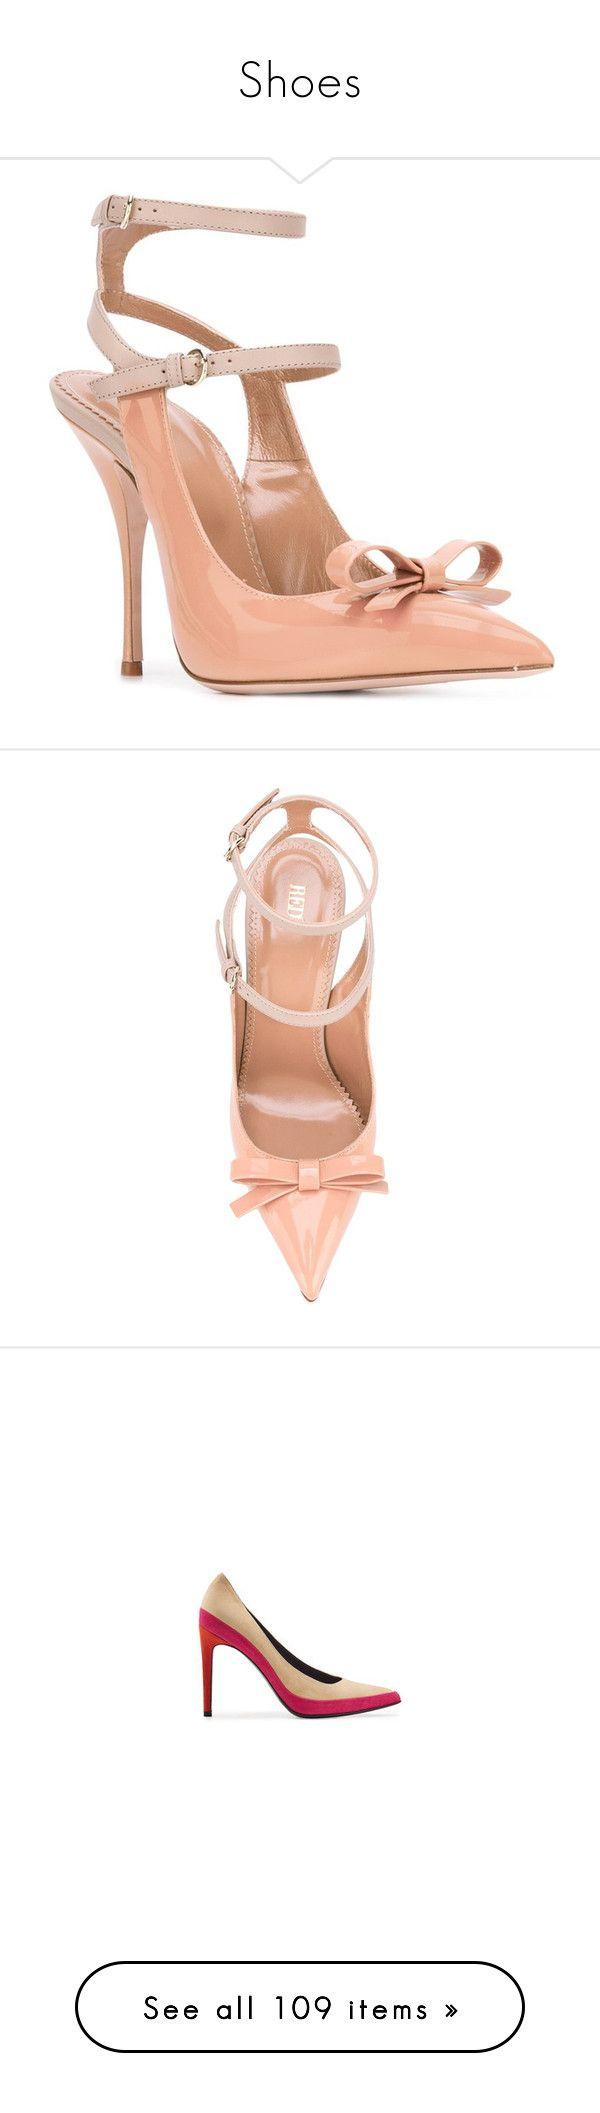 """""""Shoes"""" by bliznec ❤ liked on Polyvore featuring shoes, pumps, red valentino, red valentino pumps, bow pumps, red valentino shoes, bow shoes, block-heel pumps, suede leather shoes and colorblock shoes"""